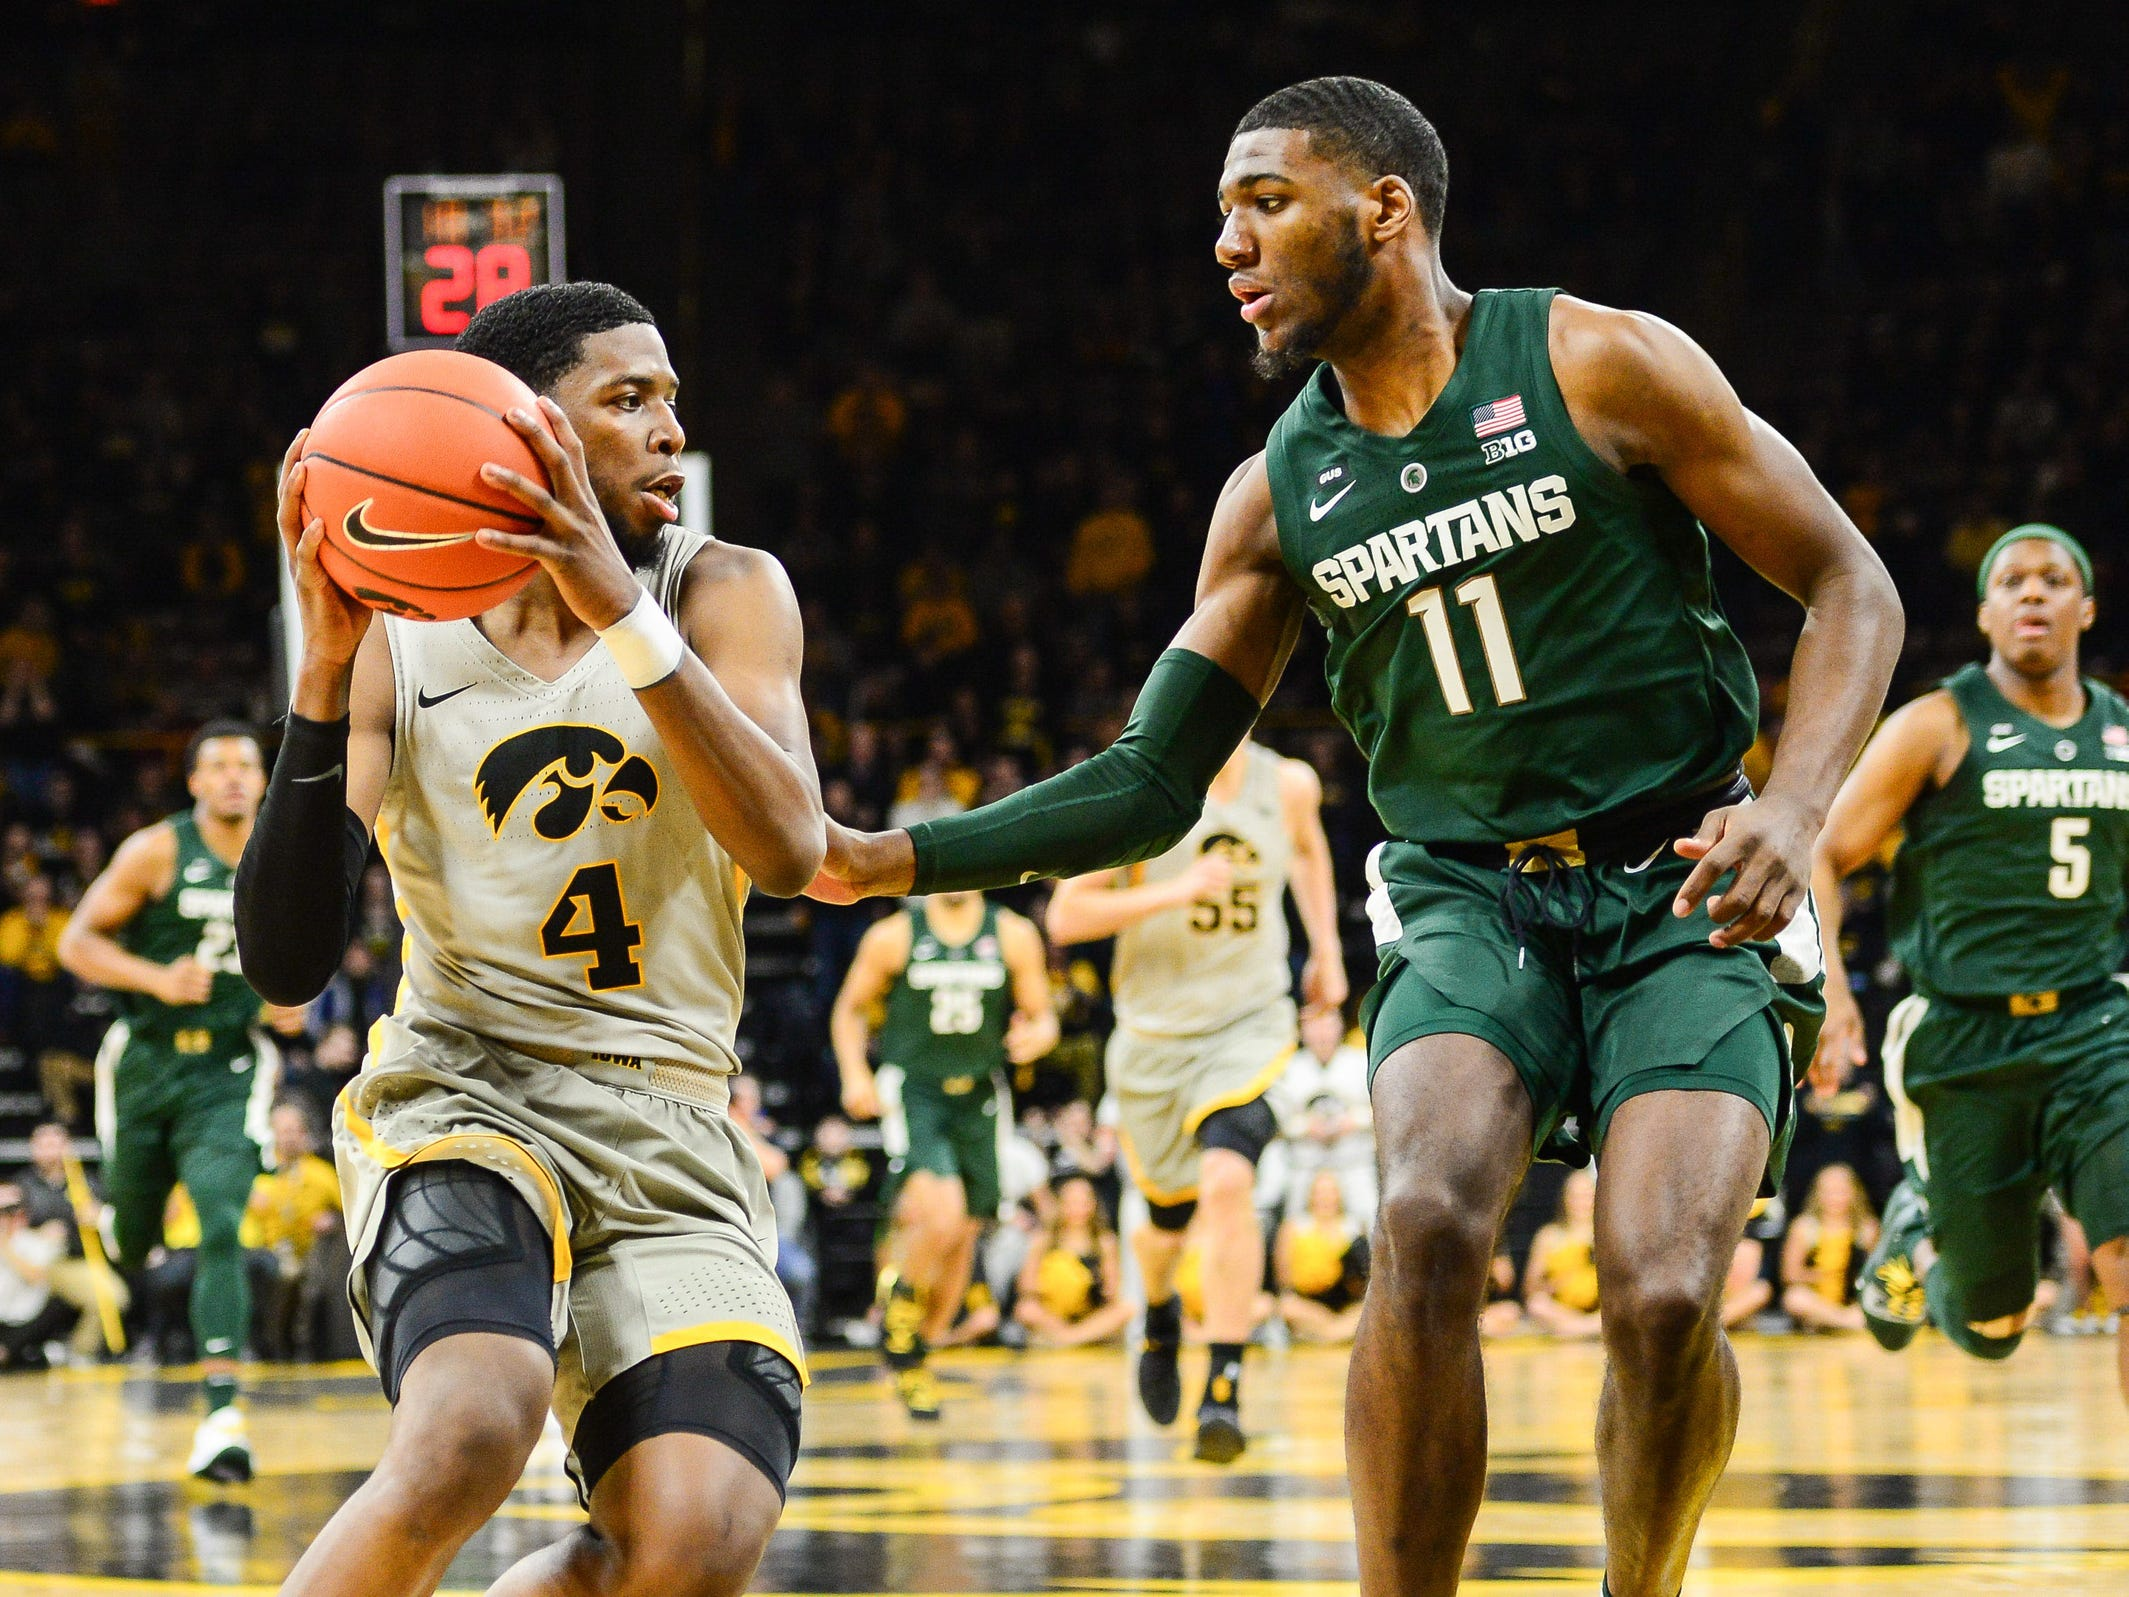 Iowa guard Isaiah Moss drives against Michigan State forward Aaron Henry during the first half Thursday, Jan. 24, 2019, in Iowa City, Iowa.